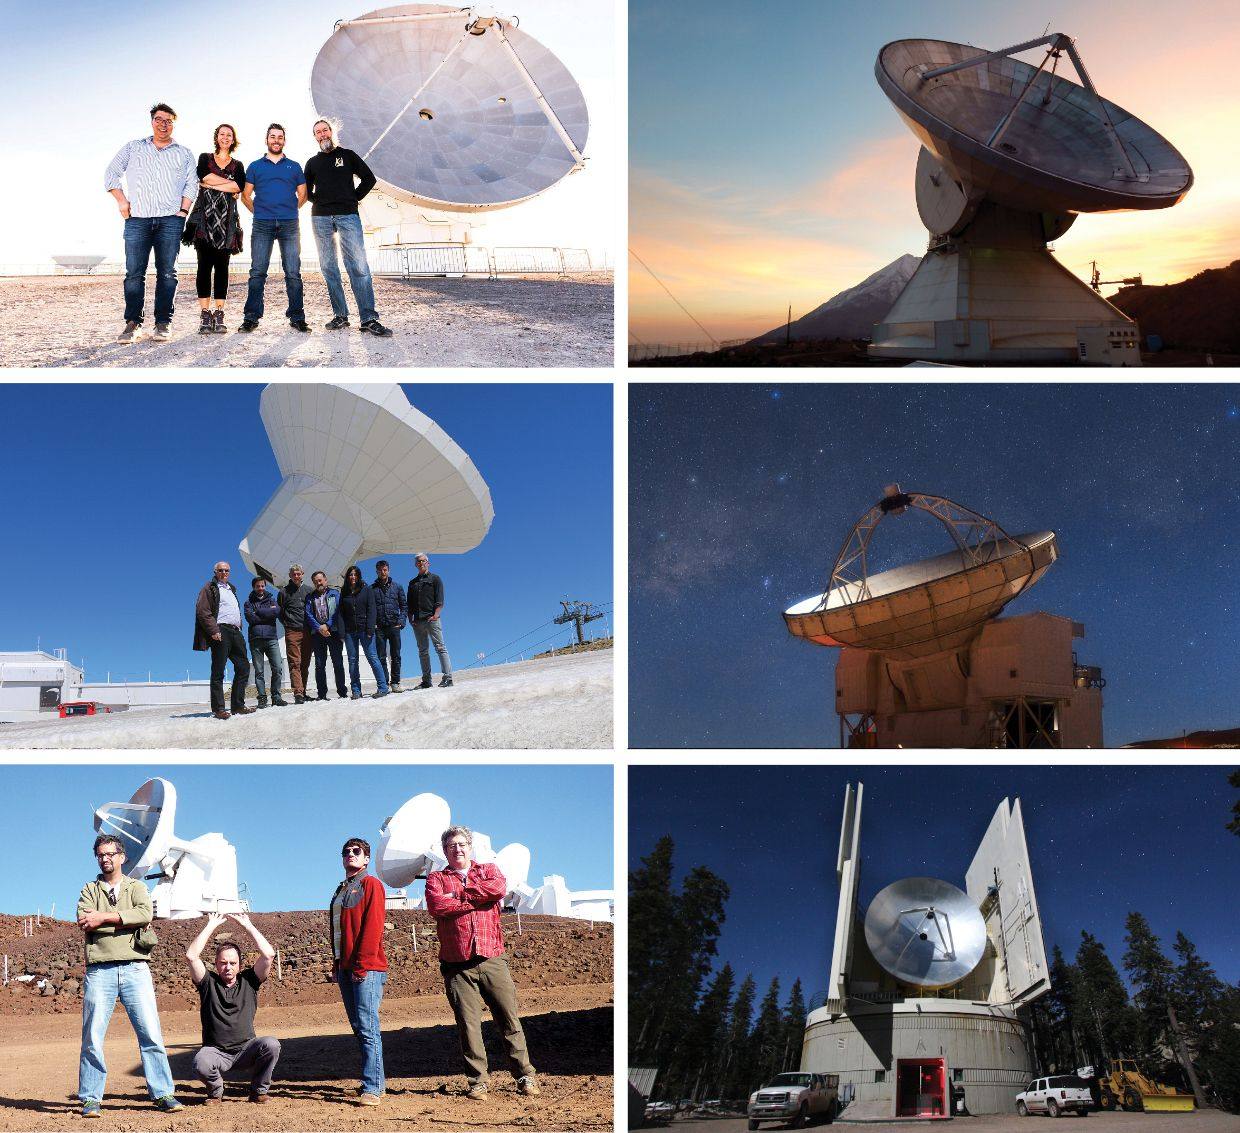 The scientific collaboration that resulted in the first images of a black hole involved hundreds of people, giant radio telescopes, and supercomputer facilities spread around the world. In addition to the James Clerk Maxwell Telescope and the South Pole Telescope [shown in photos above], six more radio telescopes were involved in the effort to produce pictures of a black hole: the Atacama Large Millimeter/submillimeter Array (ALMA), in Chile [top left]; the Large Millimeter Telescope (LMT), in Mexico [top right]; the IRAM Pico Veleta telescope, in Spain [middle left]; the Atacama Pathfinder EXperiment (APEX), in Chile [middle right]; the Submillimeter Array (SMA), in Hawaii [bottom left]; and the Submillimeter Telescope (SMT) [bottom right], in Arizona.